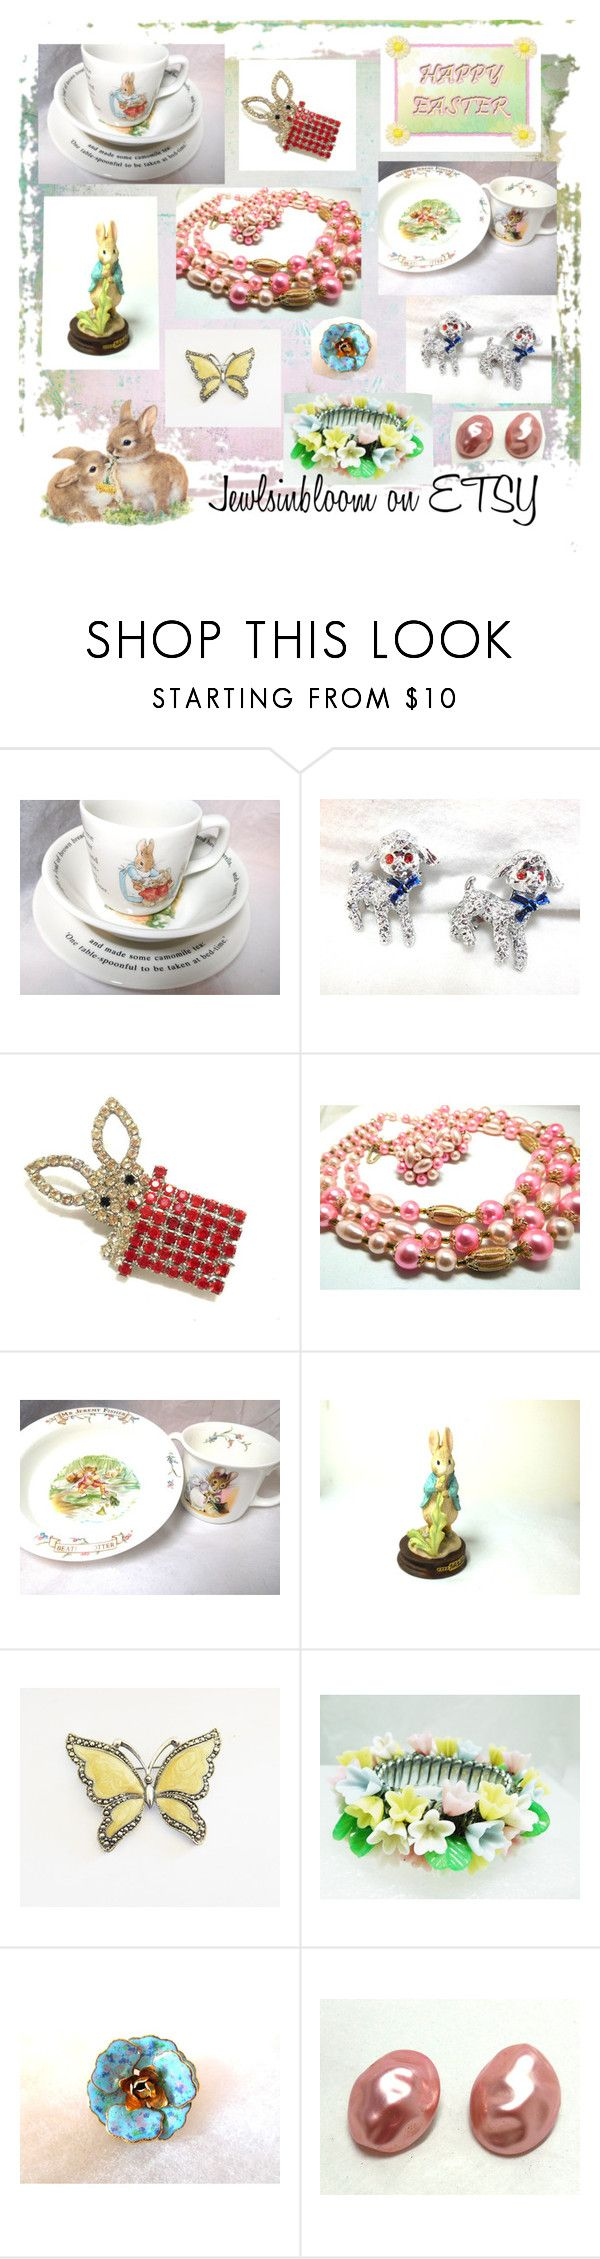 """""""Happy Easter"""" by jewlsinbloom ❤ liked on Polyvore featuring interior, interiors, interior design, home, home decor, interior decorating, Butler & Wilson, Royal Albert and vintage"""